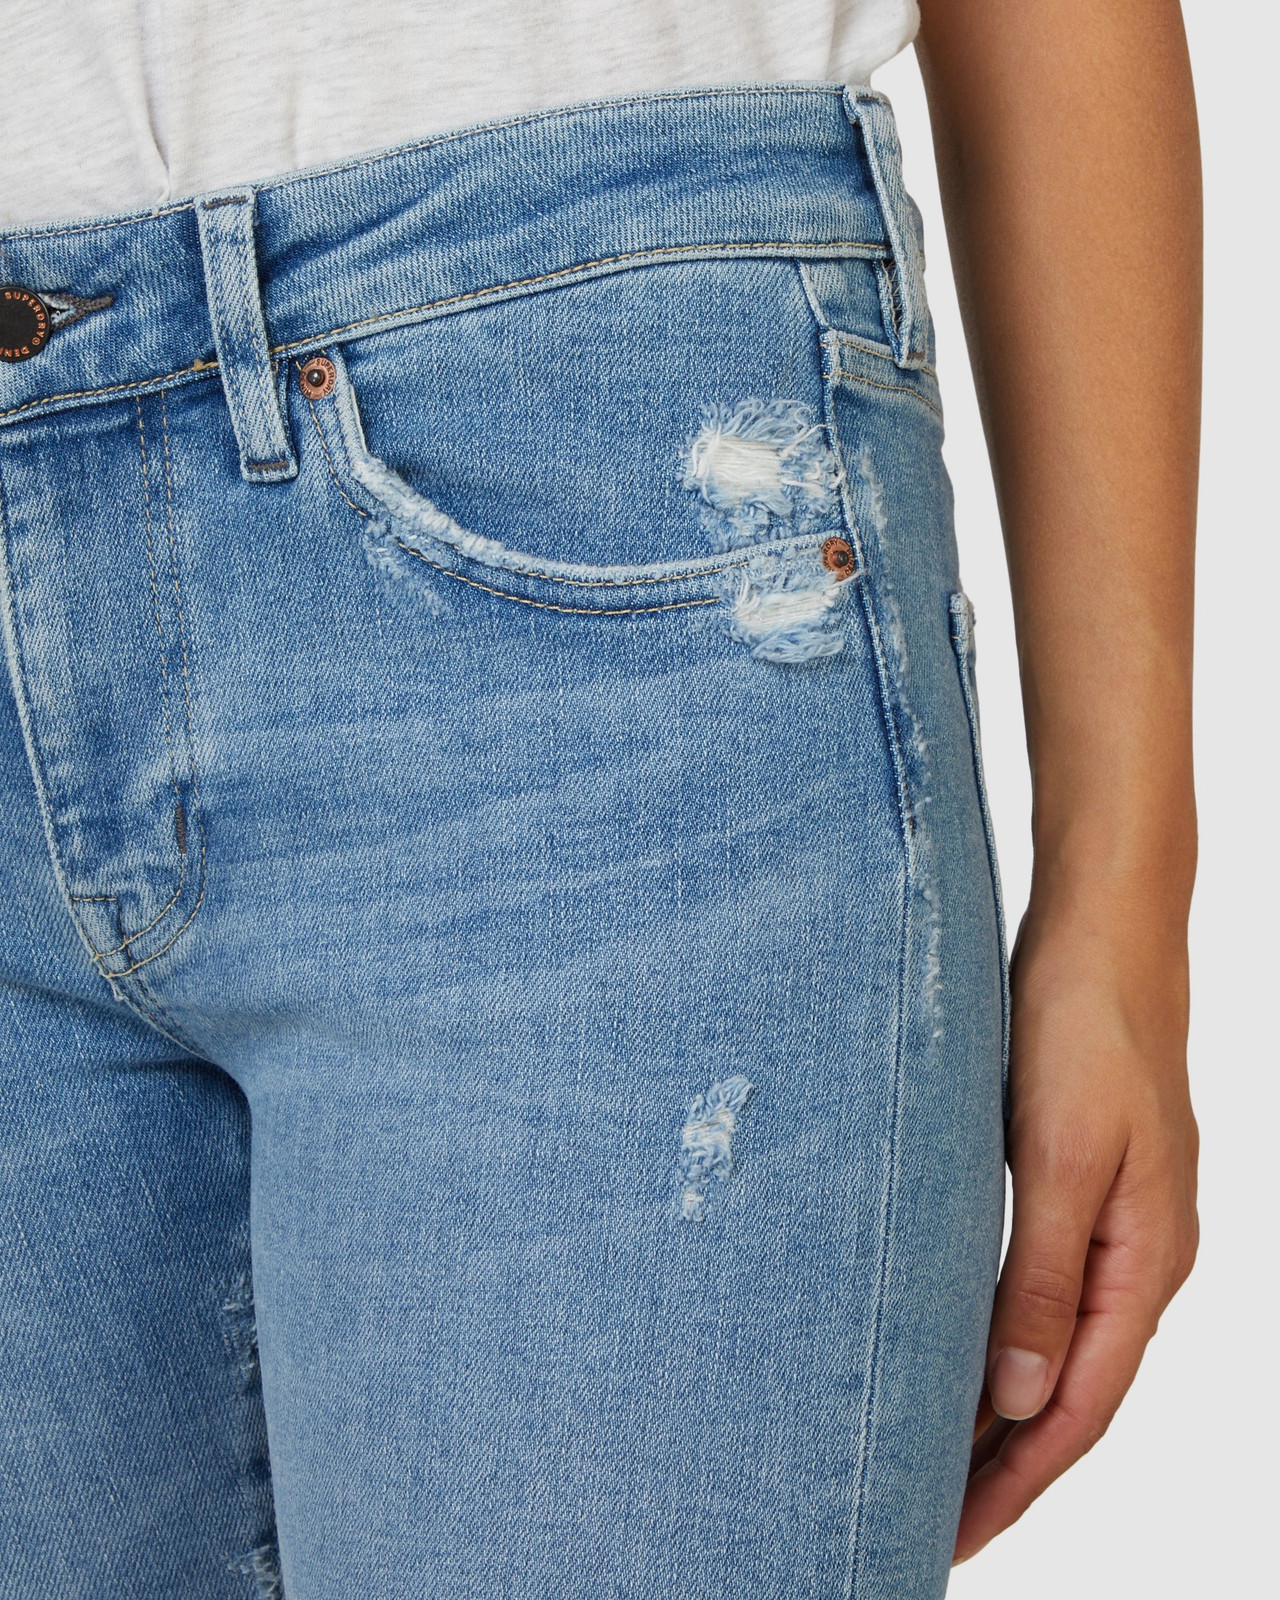 Superdry Womens MID RISE SKINNY Blue Skinny Jeans 15